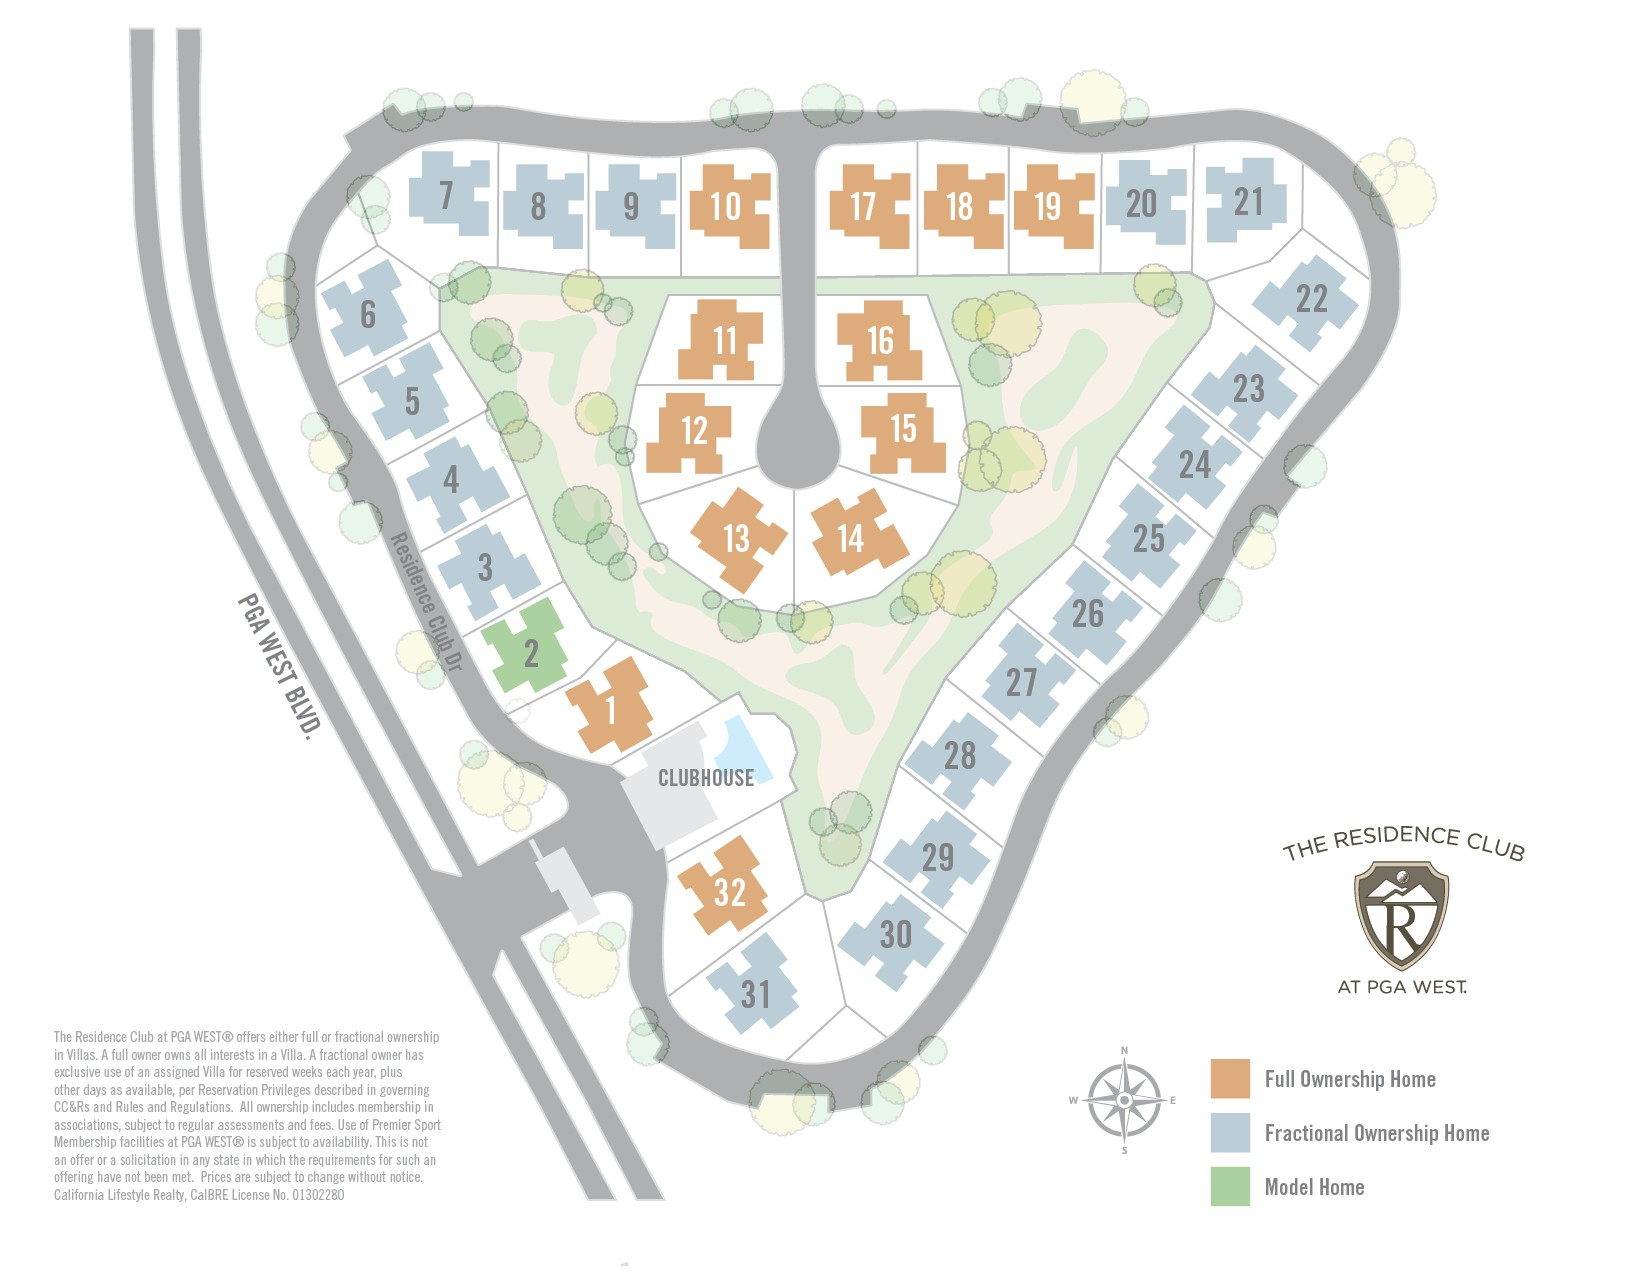 The Residence Club at PGA WEST® Site plan